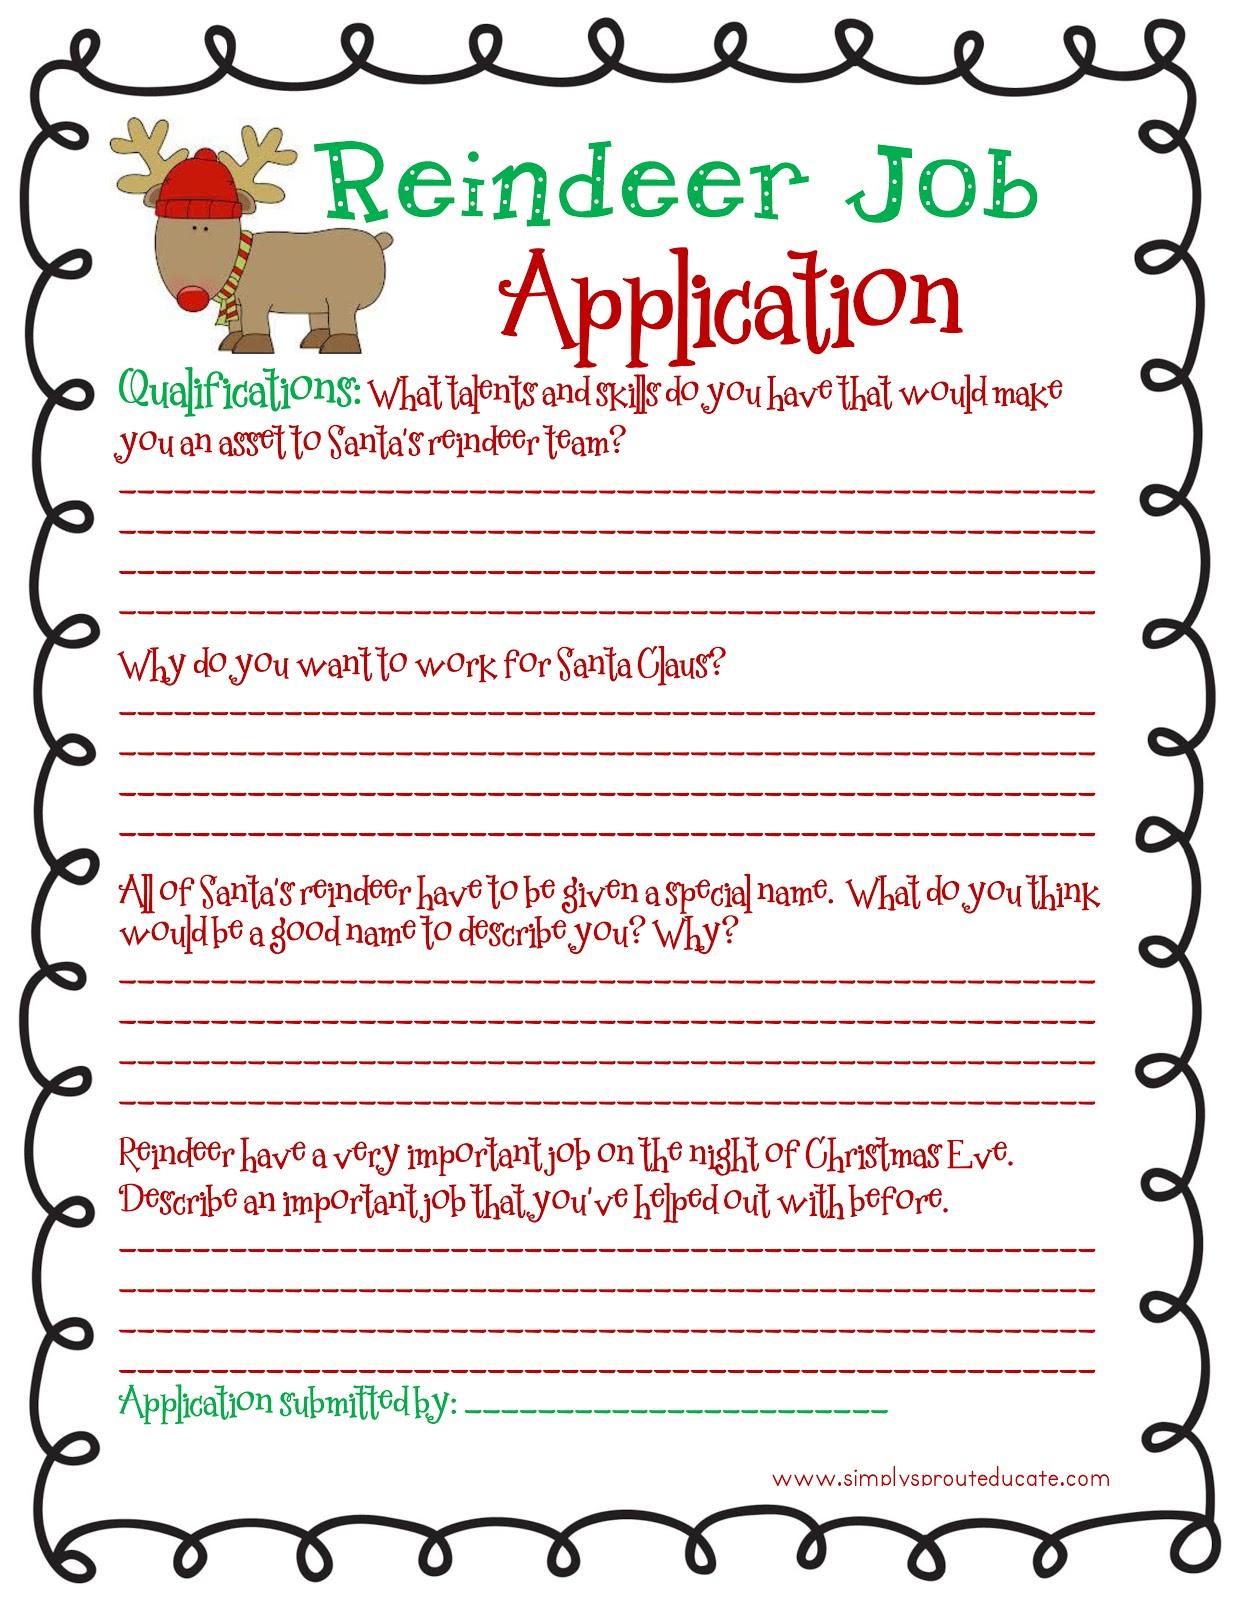 Month of Joy: Reindeer Wanted - Simply Sprout on kfc printable job application form, forever 21 application united states, roses application print out form, dunkin' donuts printable application form, forever 21 application form usa, forever 21 job application usa, denny's printable job application form, printable basic job application form, forever 21 paper application form, chick fil printable job application form, sonic printable job application form, forever 21 app, gnc printable job application form, starbucks printable job application form, forever 21 employment application, printable blank job application form, nike application form, forever 21 print application pdf,